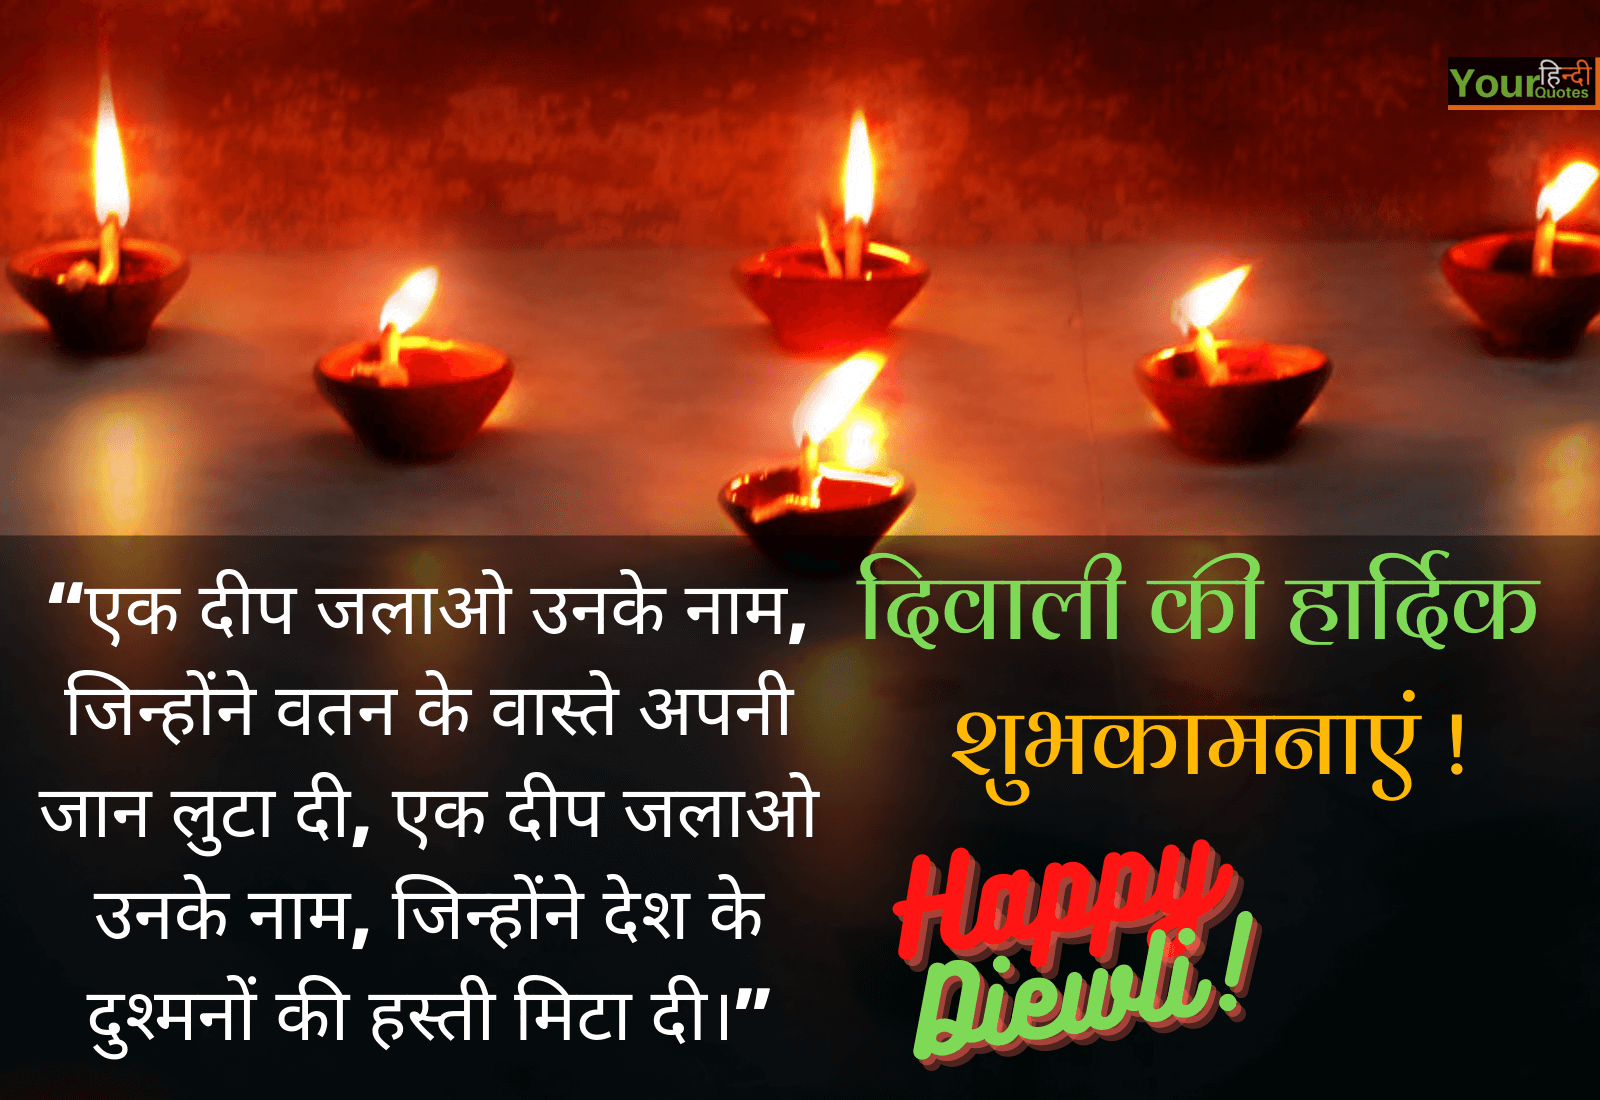 Happy Diwali Hindi wishes Images